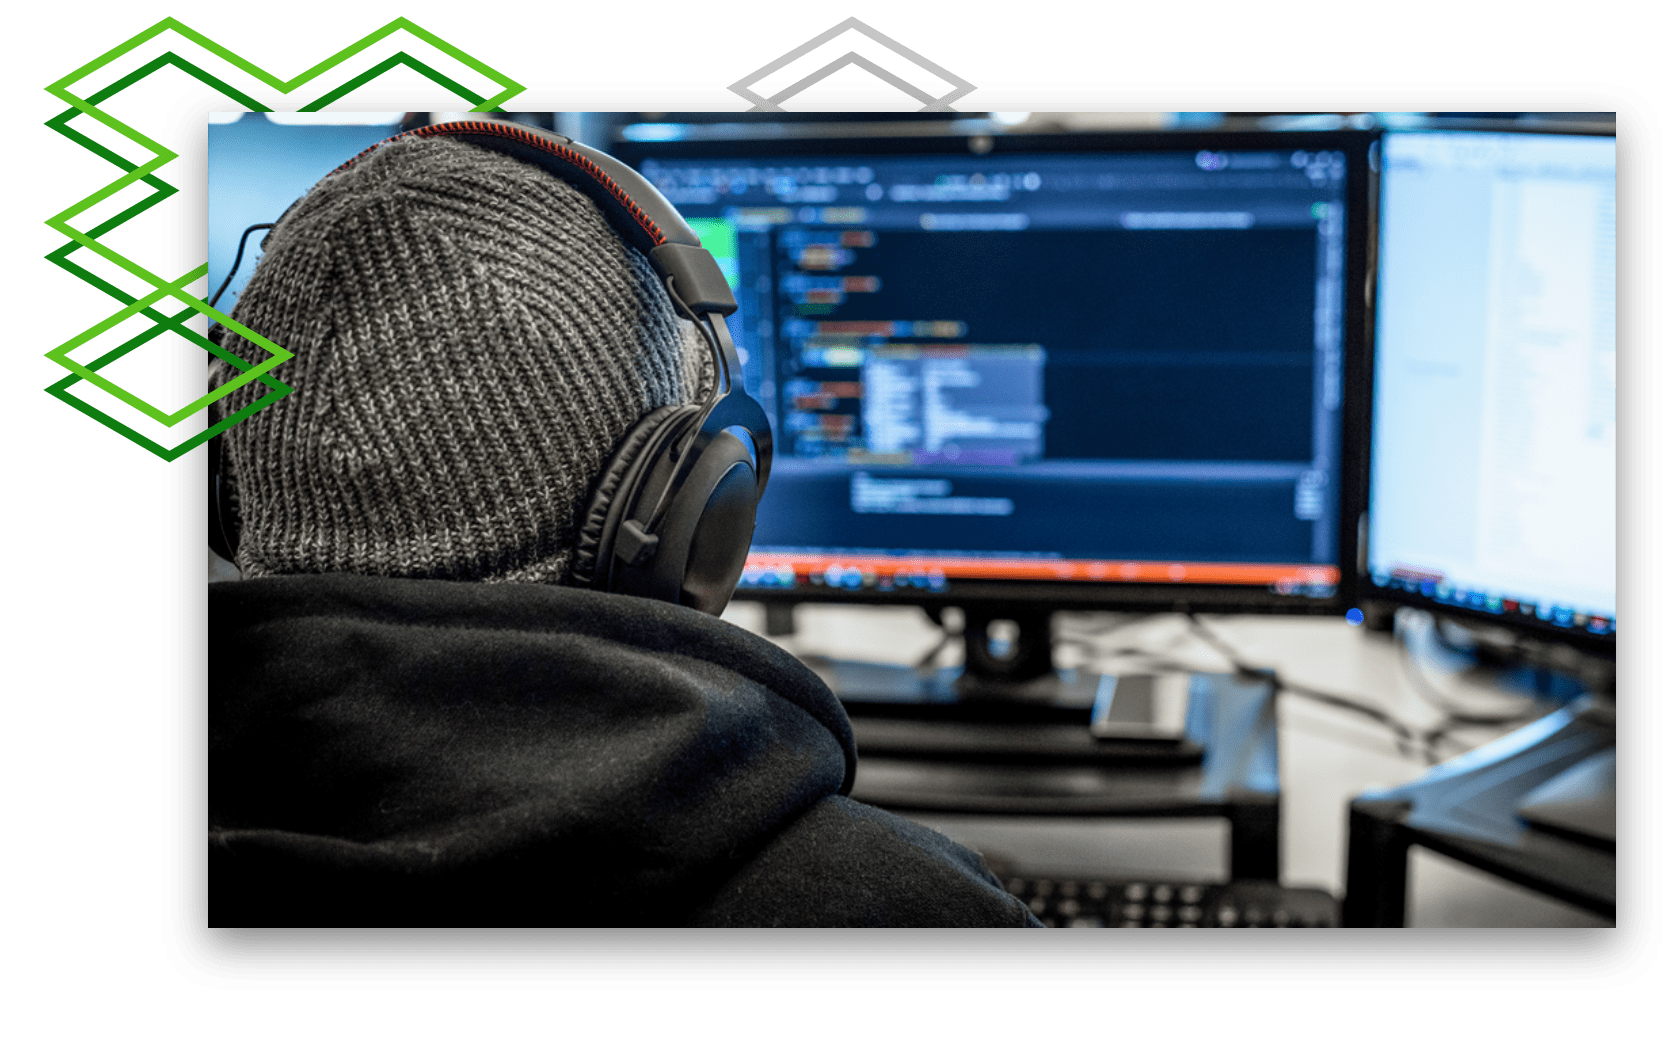 Person with headphones on over a beanie looking at a screen with code on it